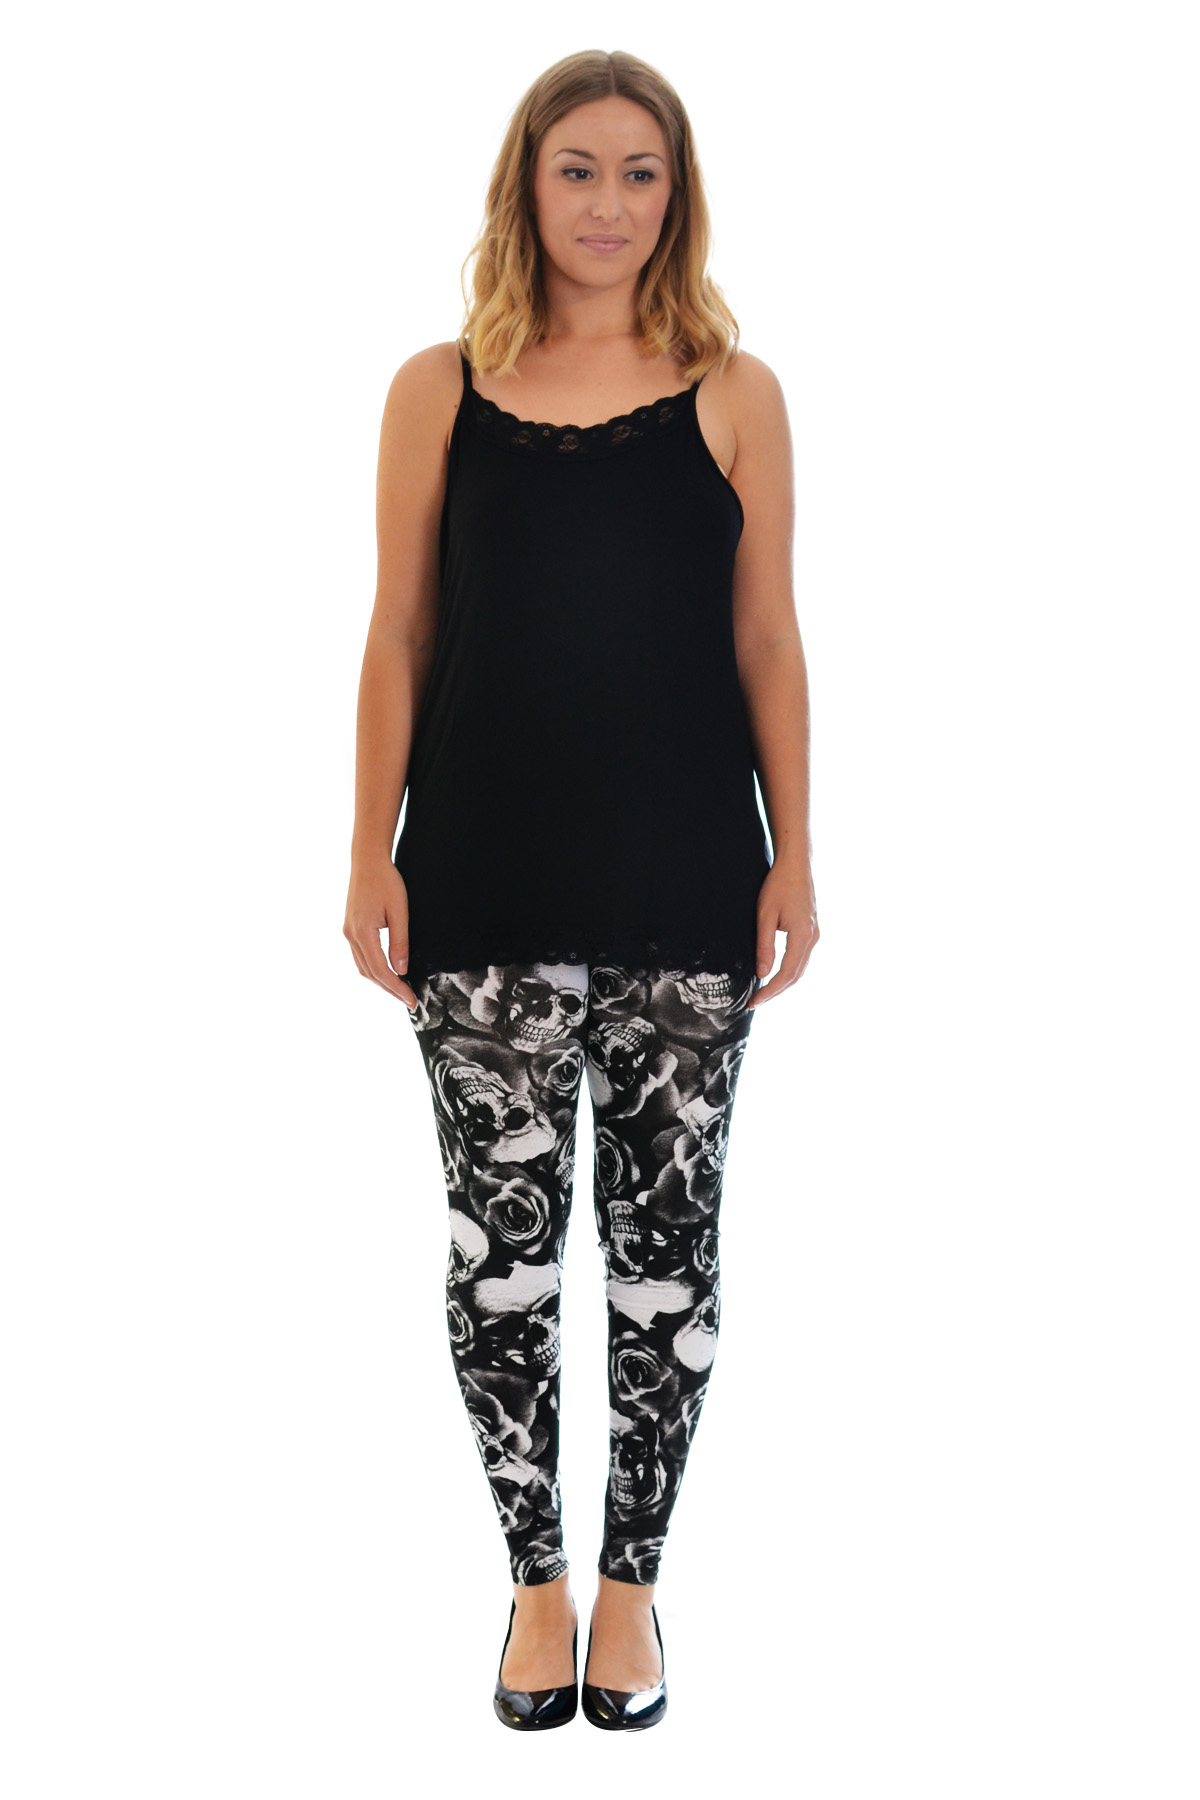 New Womens Leggings Plus Size Ladies Skulls and Roses Trouser Tattoo Nouvelle